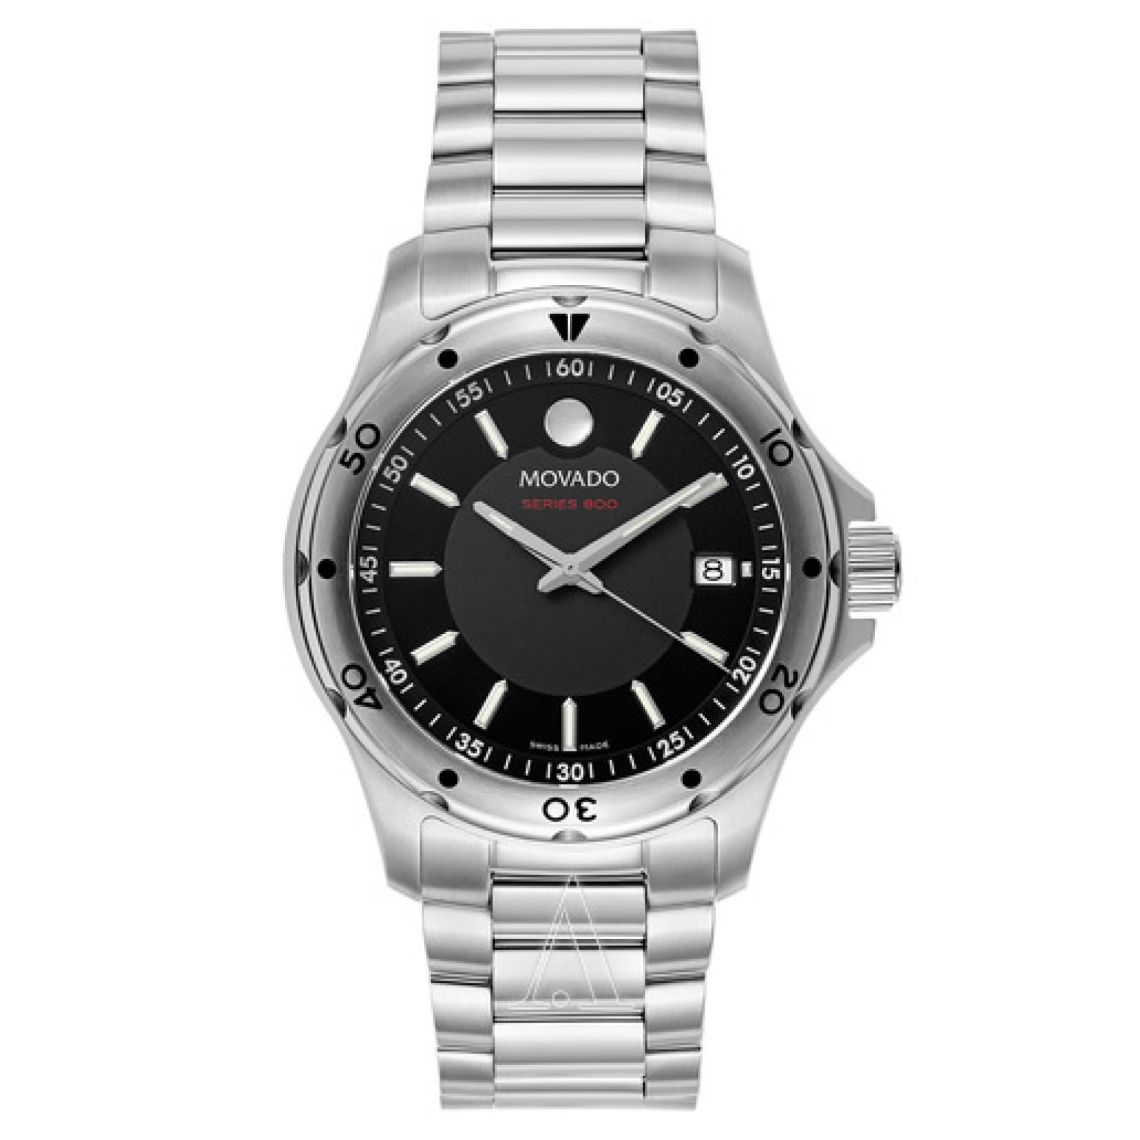 Movado Series 800 2600074 Men's Watch , watches